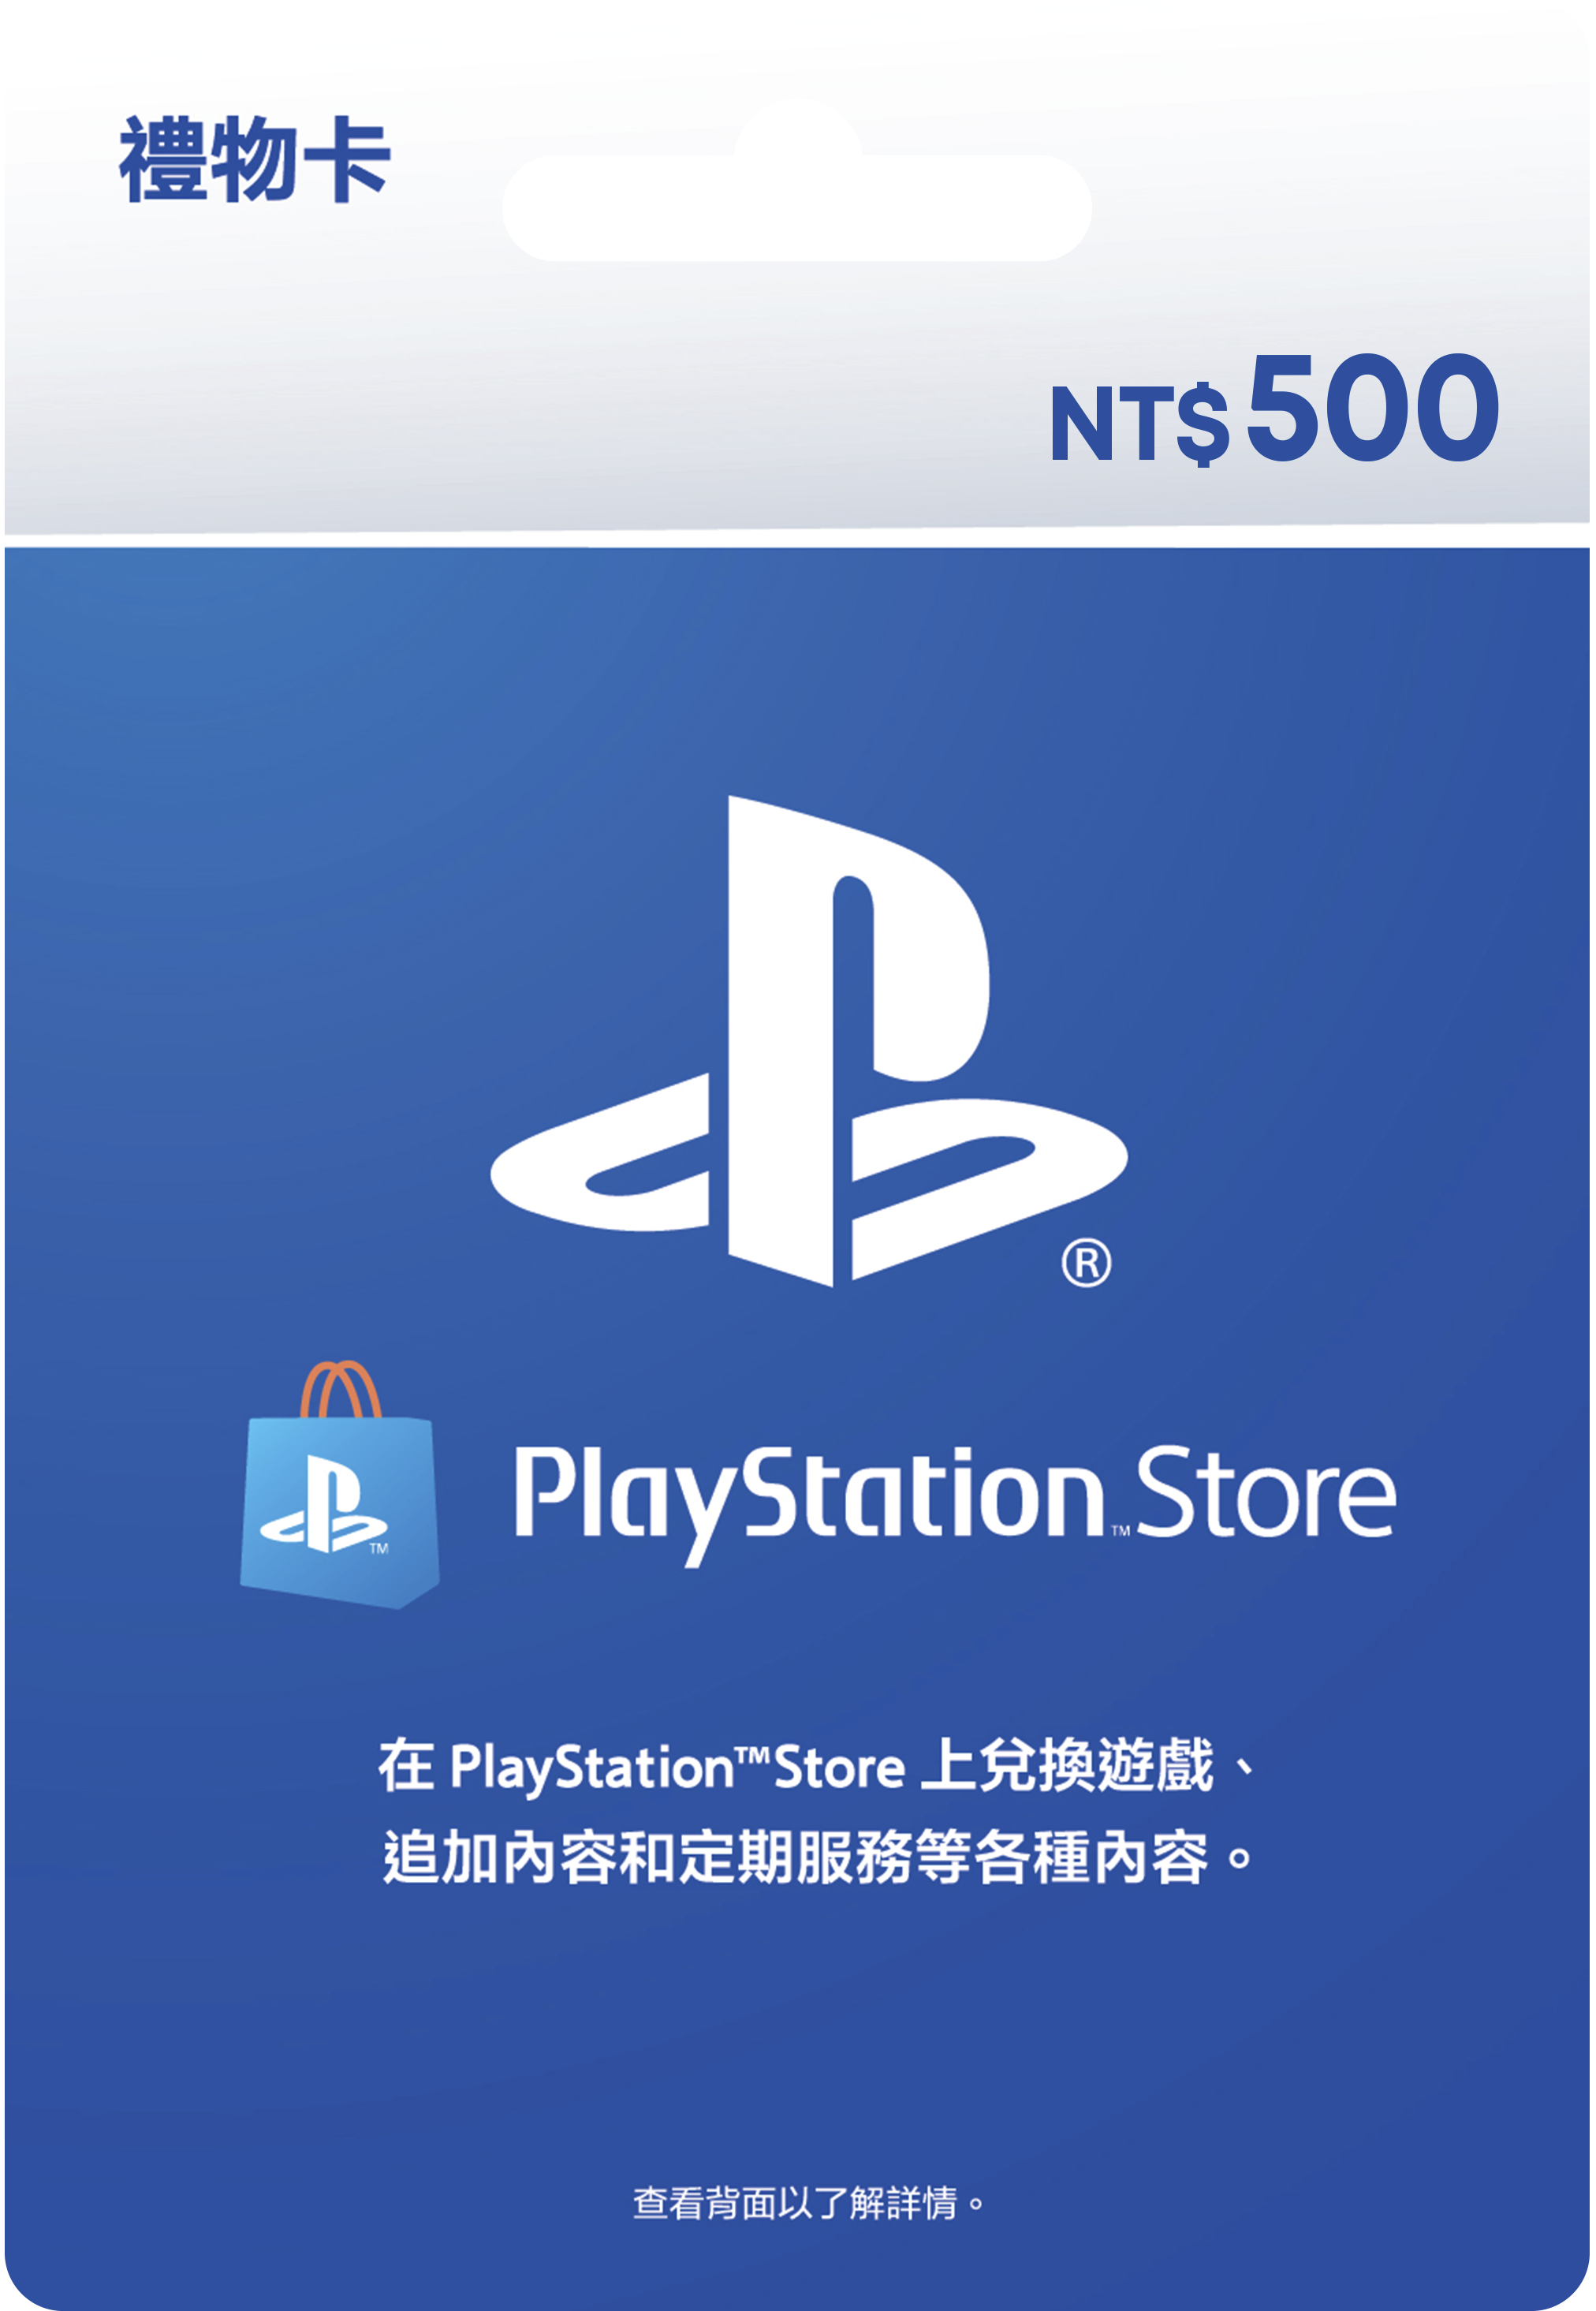 PlayStation Store gift cards NT$500